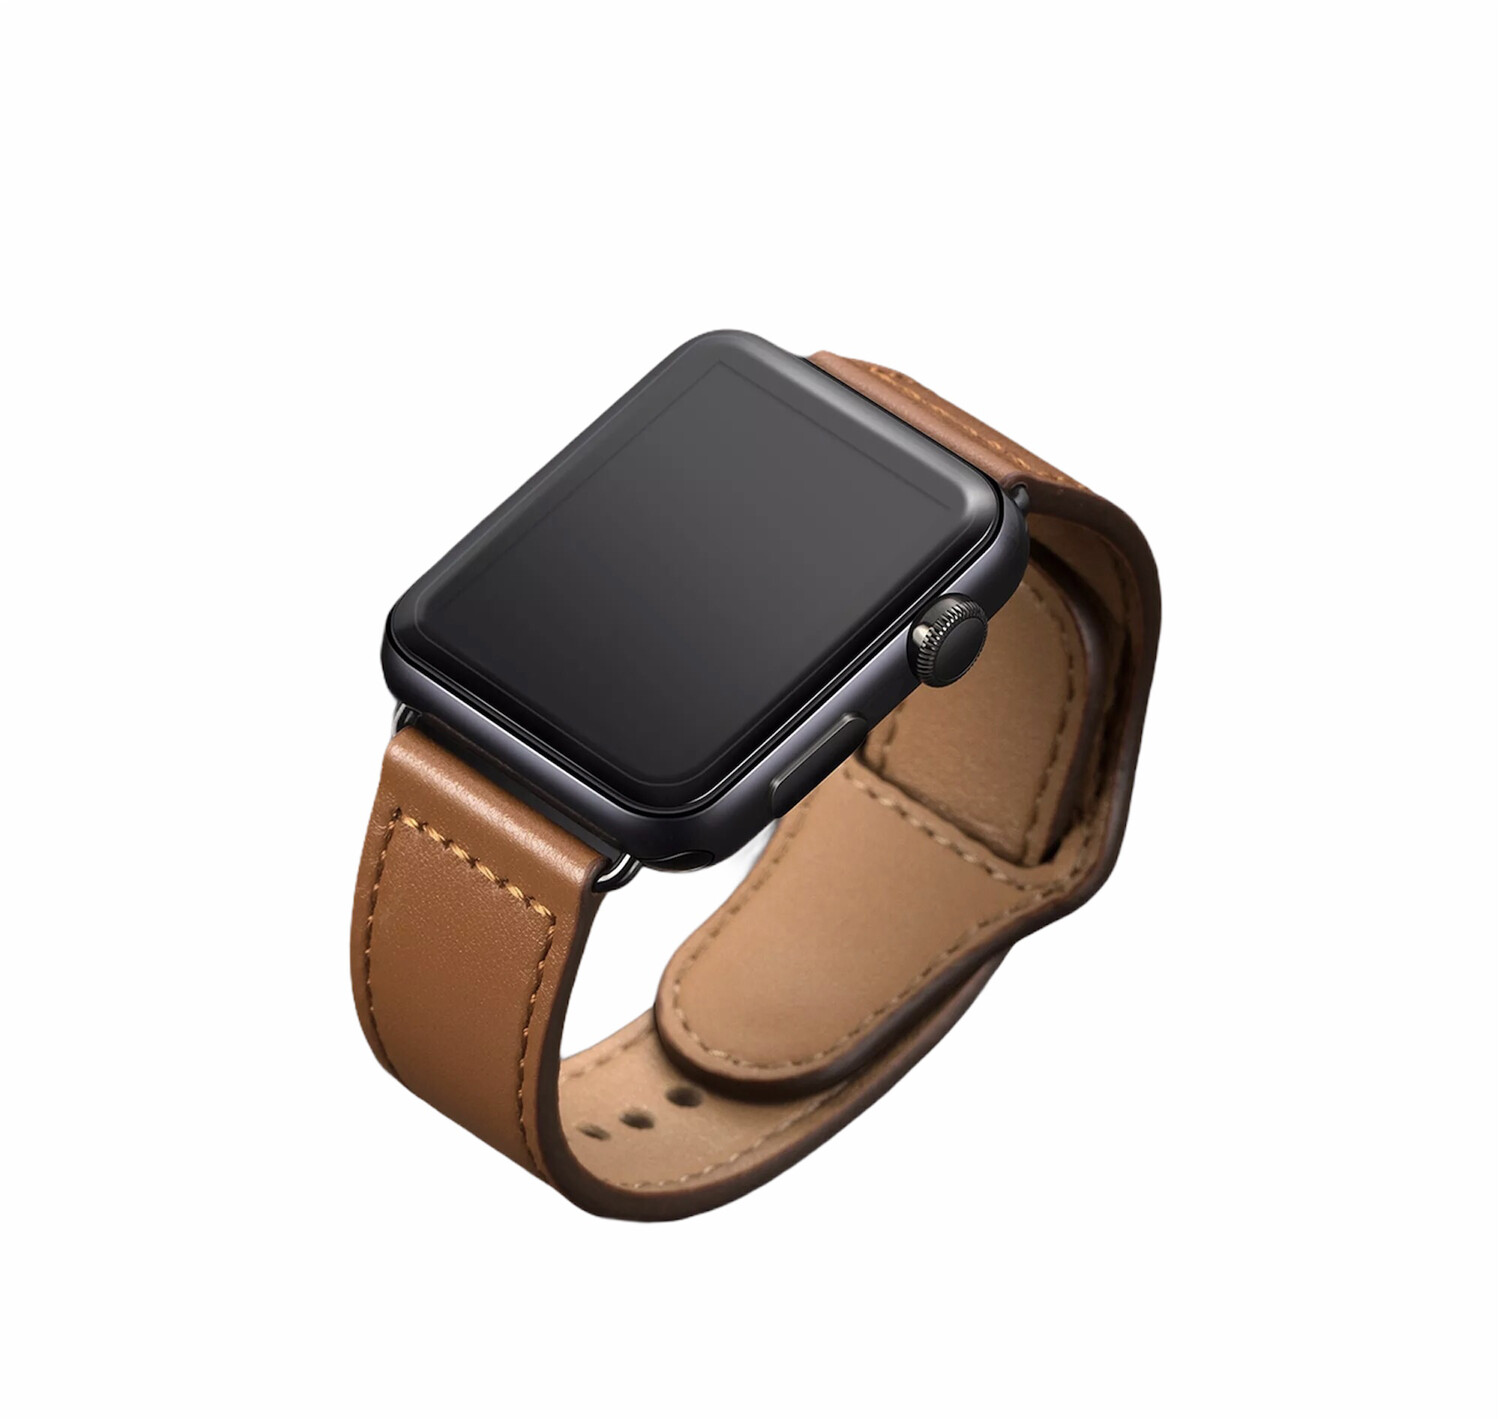 Apple Watch Leather Band [Brown]